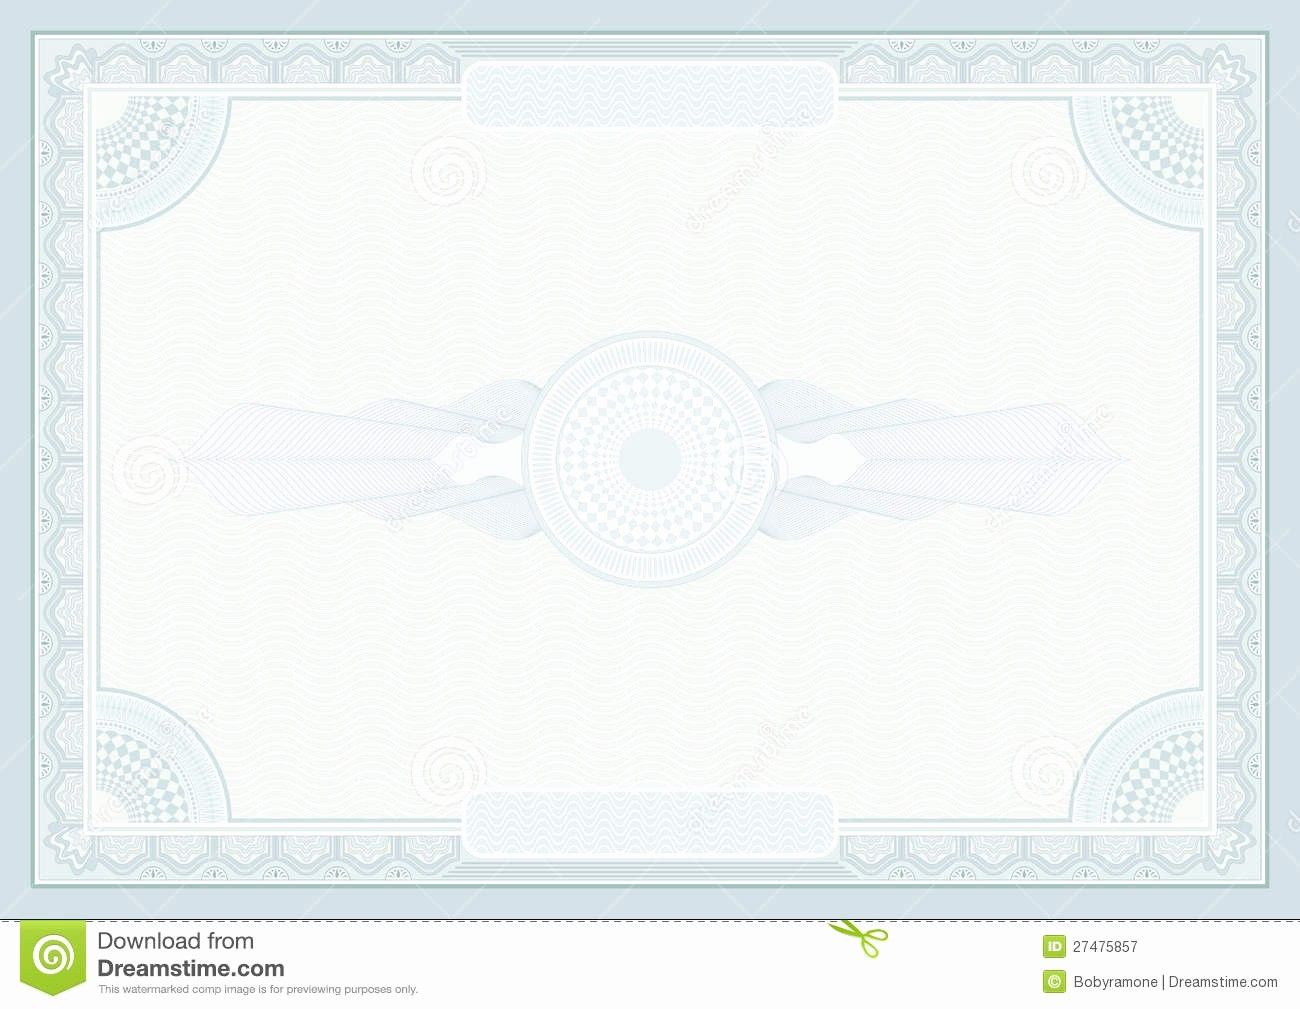 Certificate Background Design Free Download Fresh 10 Best Of Certificate Background Design